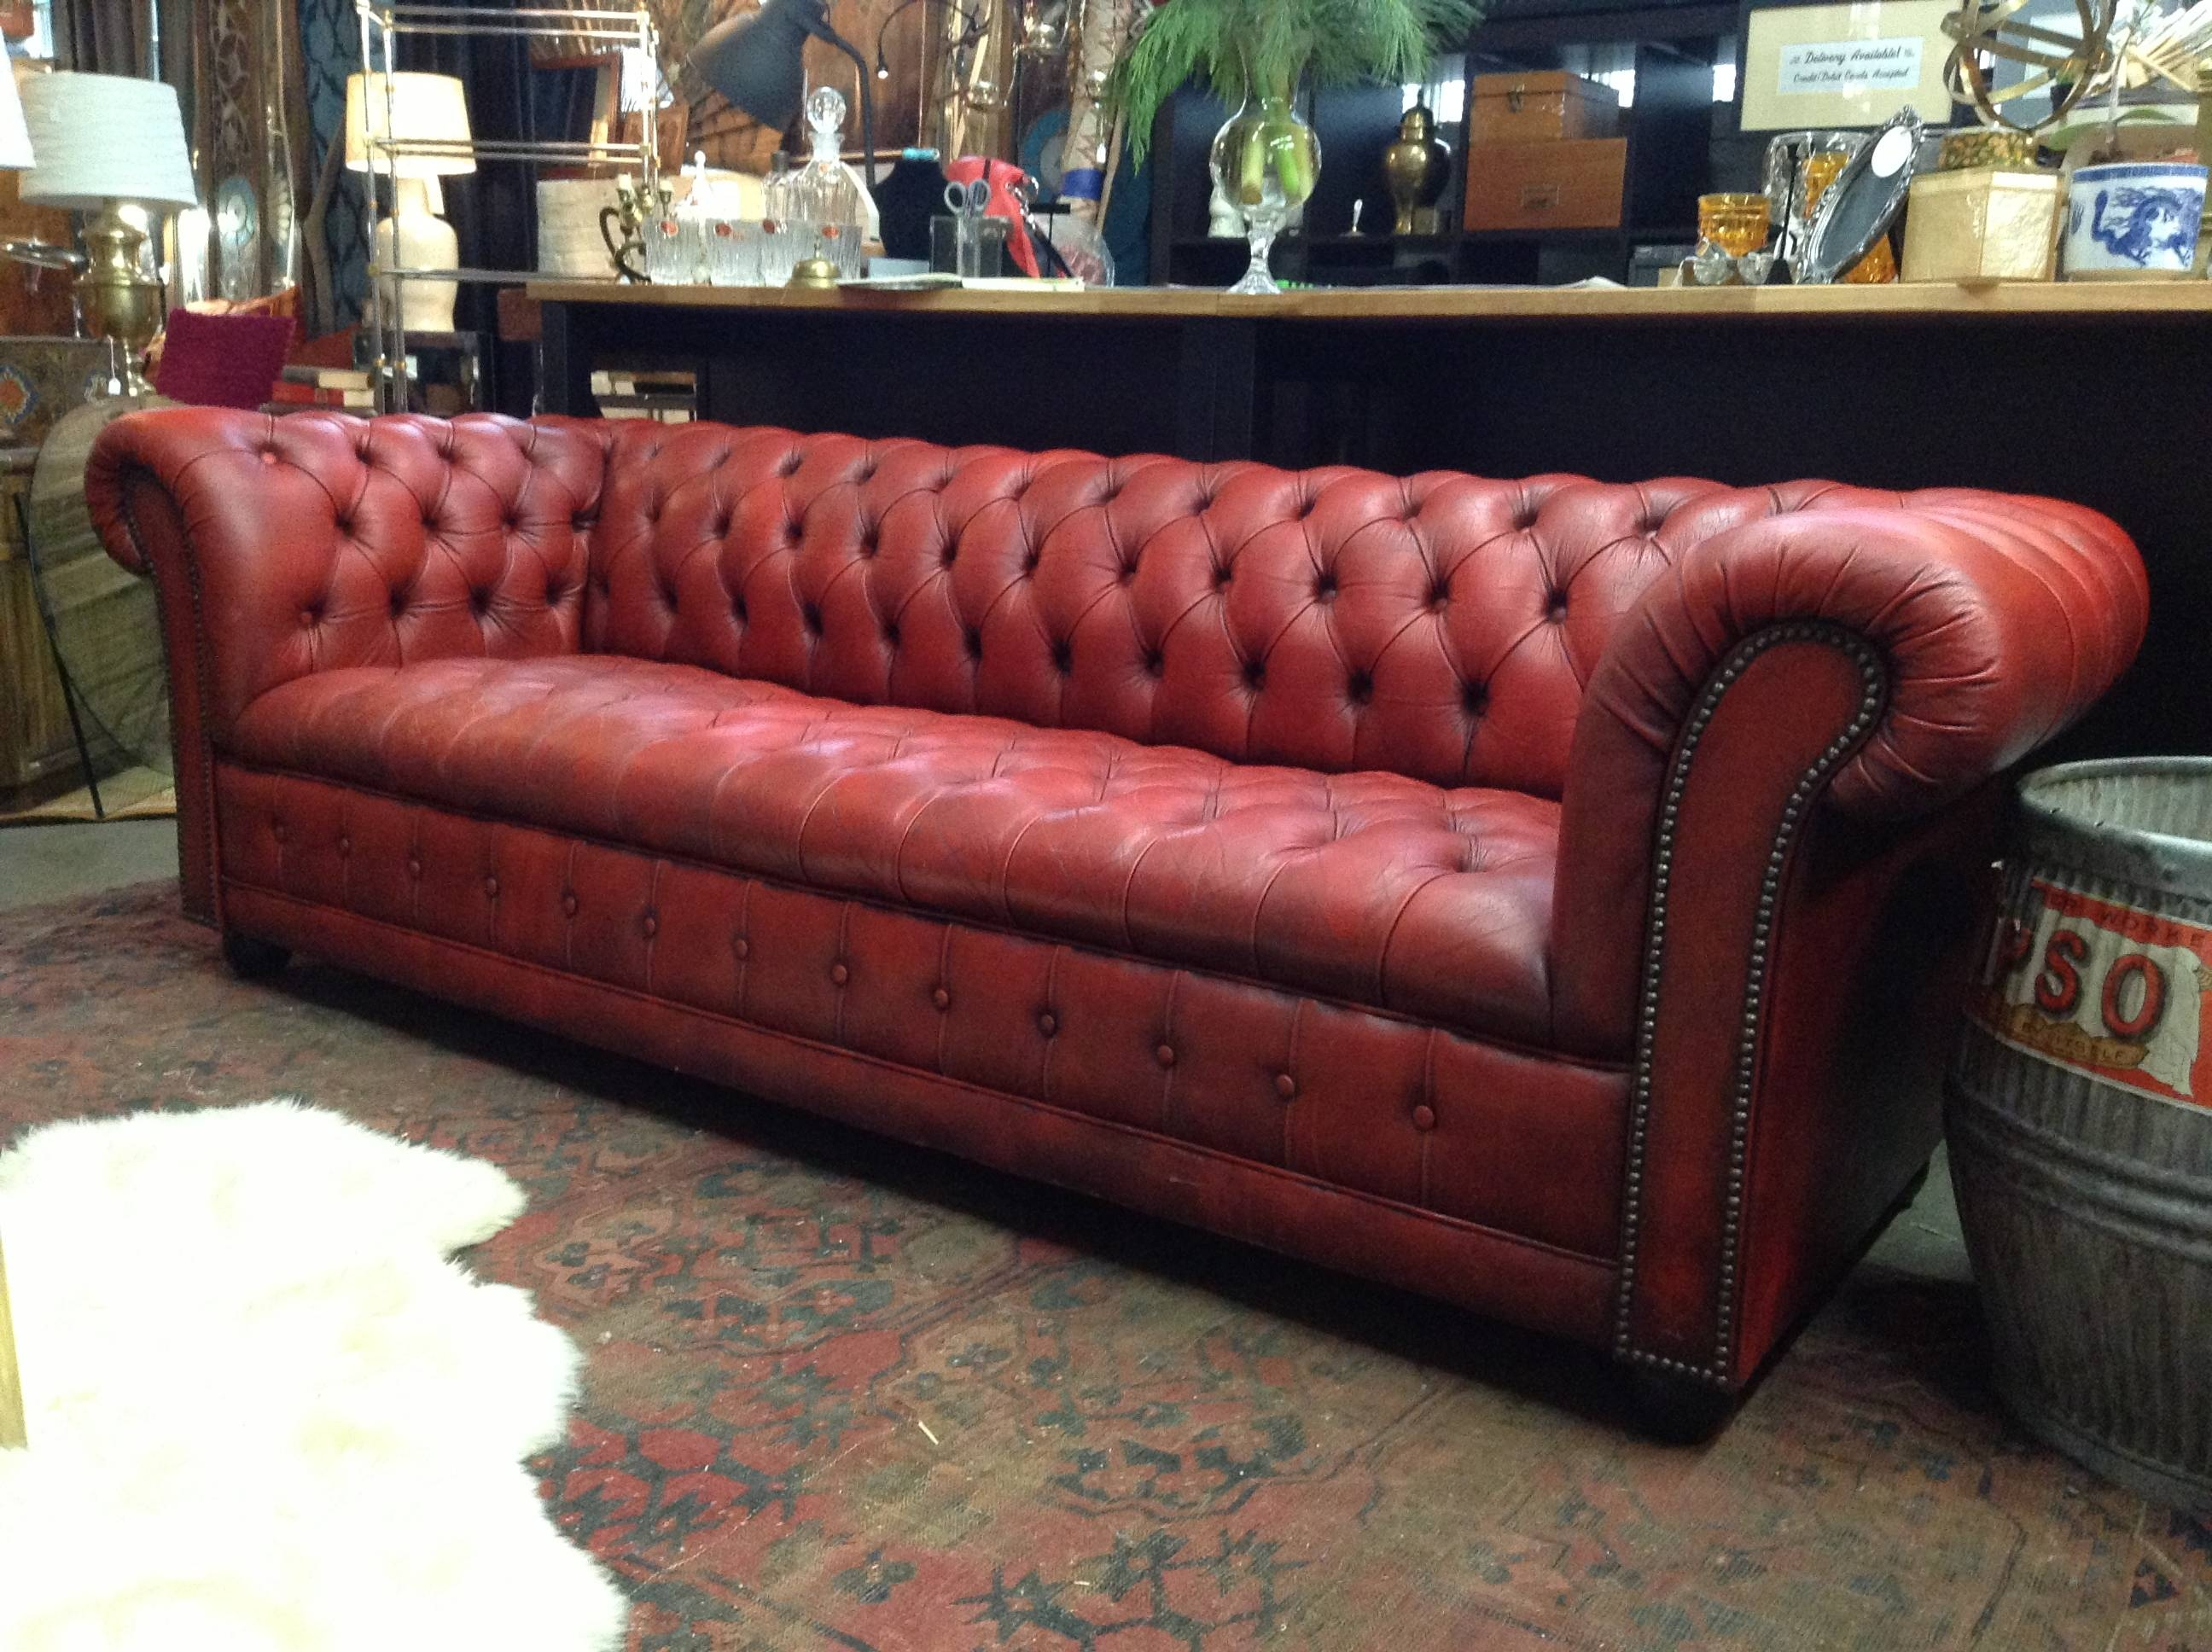 Sofa : Tufted Leather Chesterfield Sofa Home Design Ideas with Red Leather Chesterfield Sofas (Image 14 of 15)